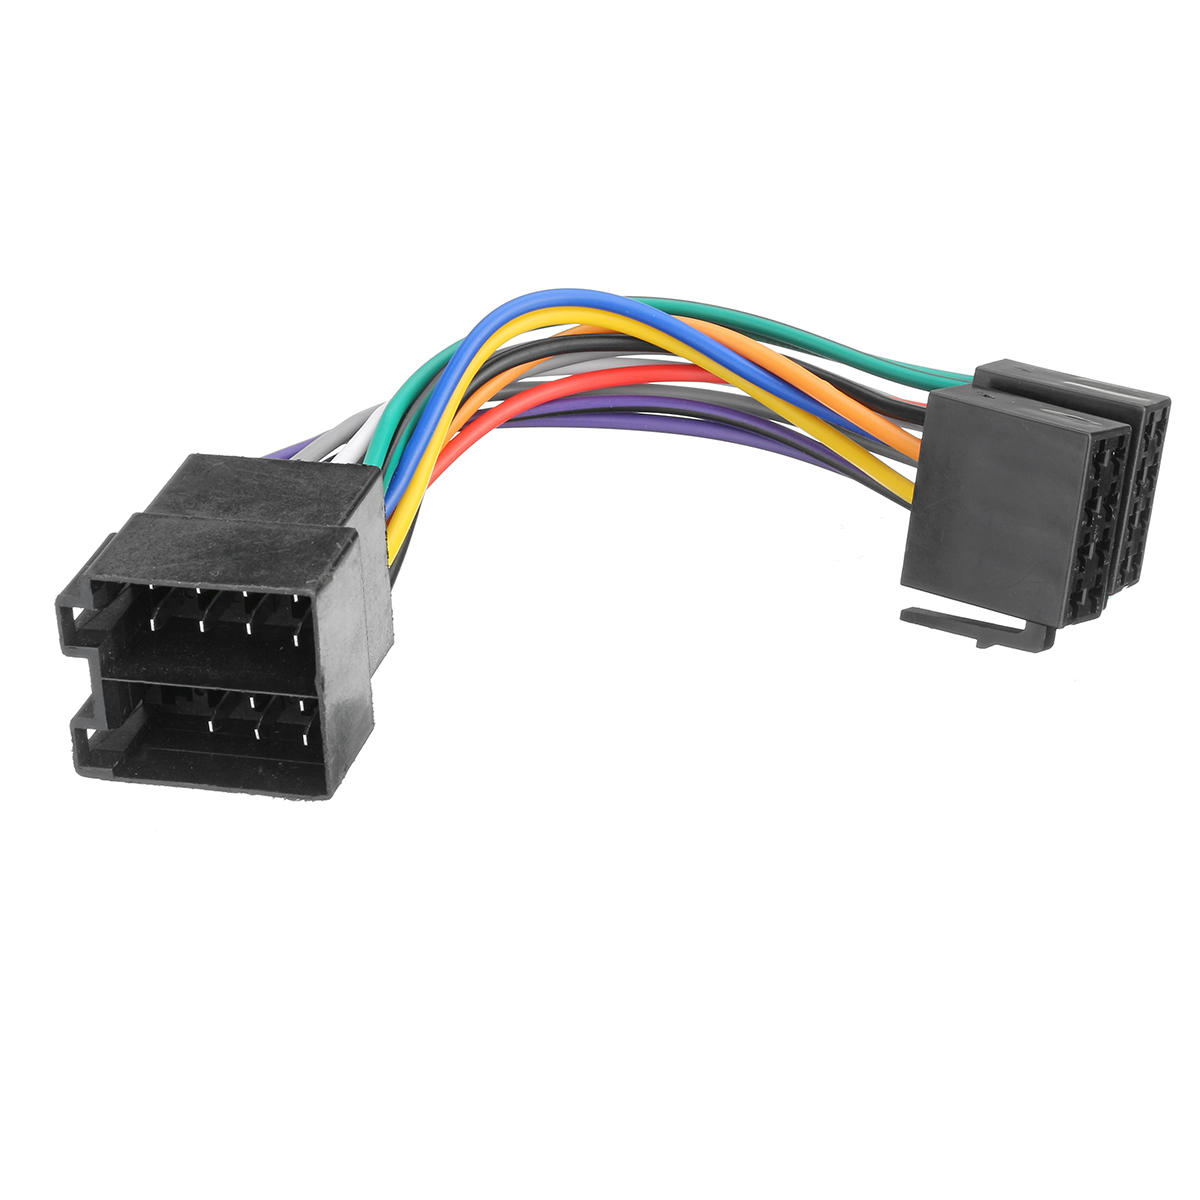 Wiring Harness Cable Cord Wire For Holden Mercedes Commodore VZ Astra Vectra Barina